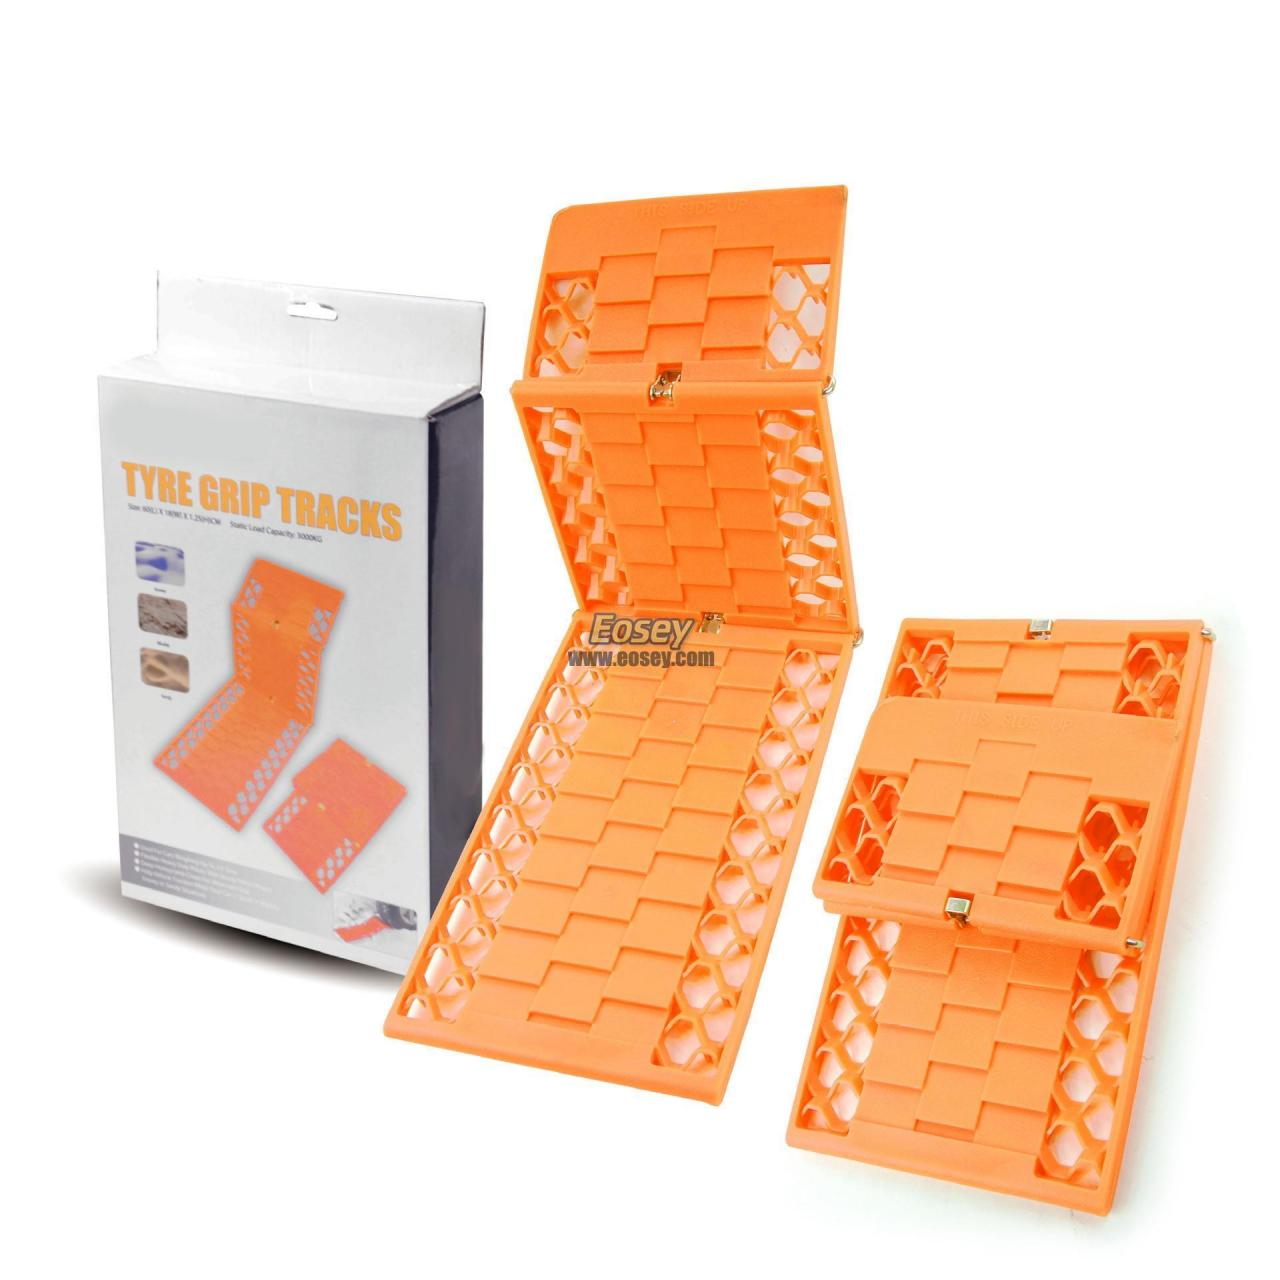 Wholesale Type grip tracks, foldable recovery tracks, anti-skid tracks from china suppliers